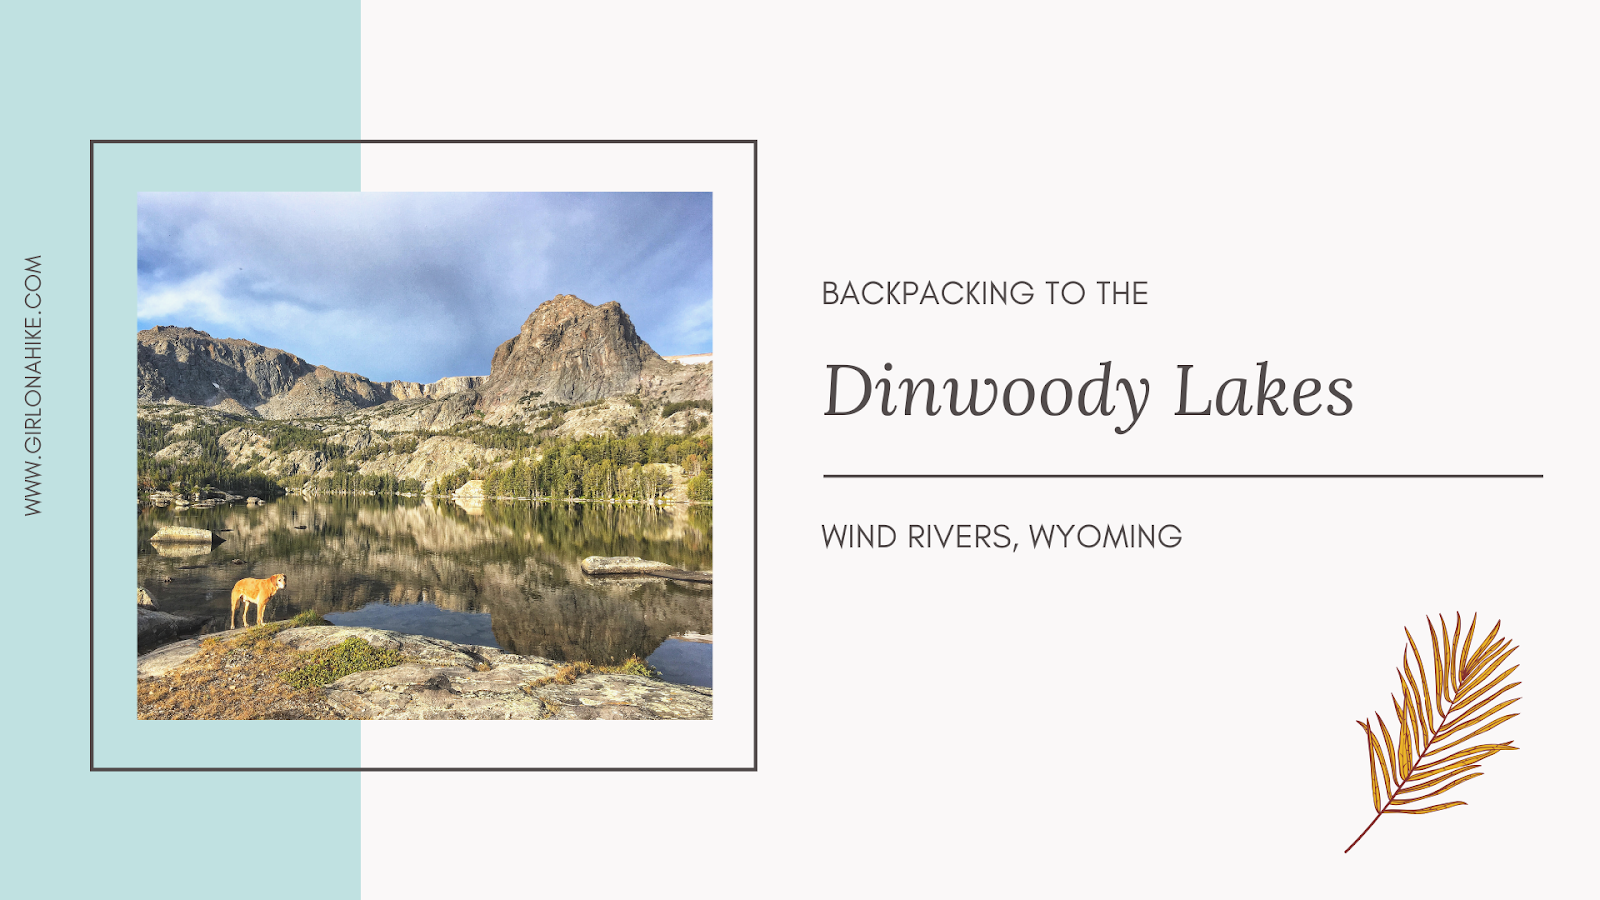 Backpacking to the Dinwoody Lakes, Wind Rivers